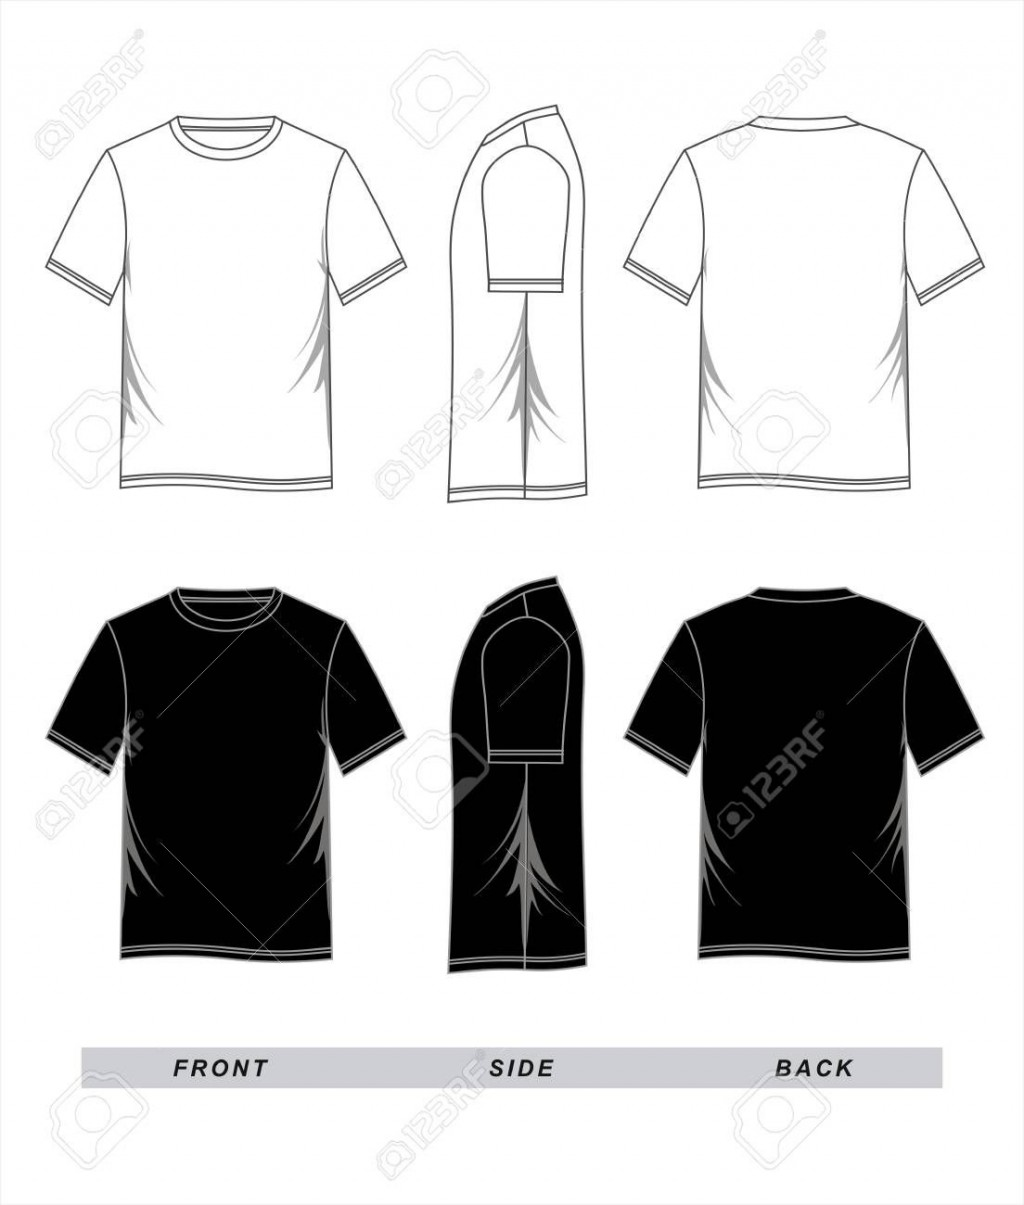 001 Striking T Shirt Template Vector Image  Black Front And Back Free Download IllustratorLarge